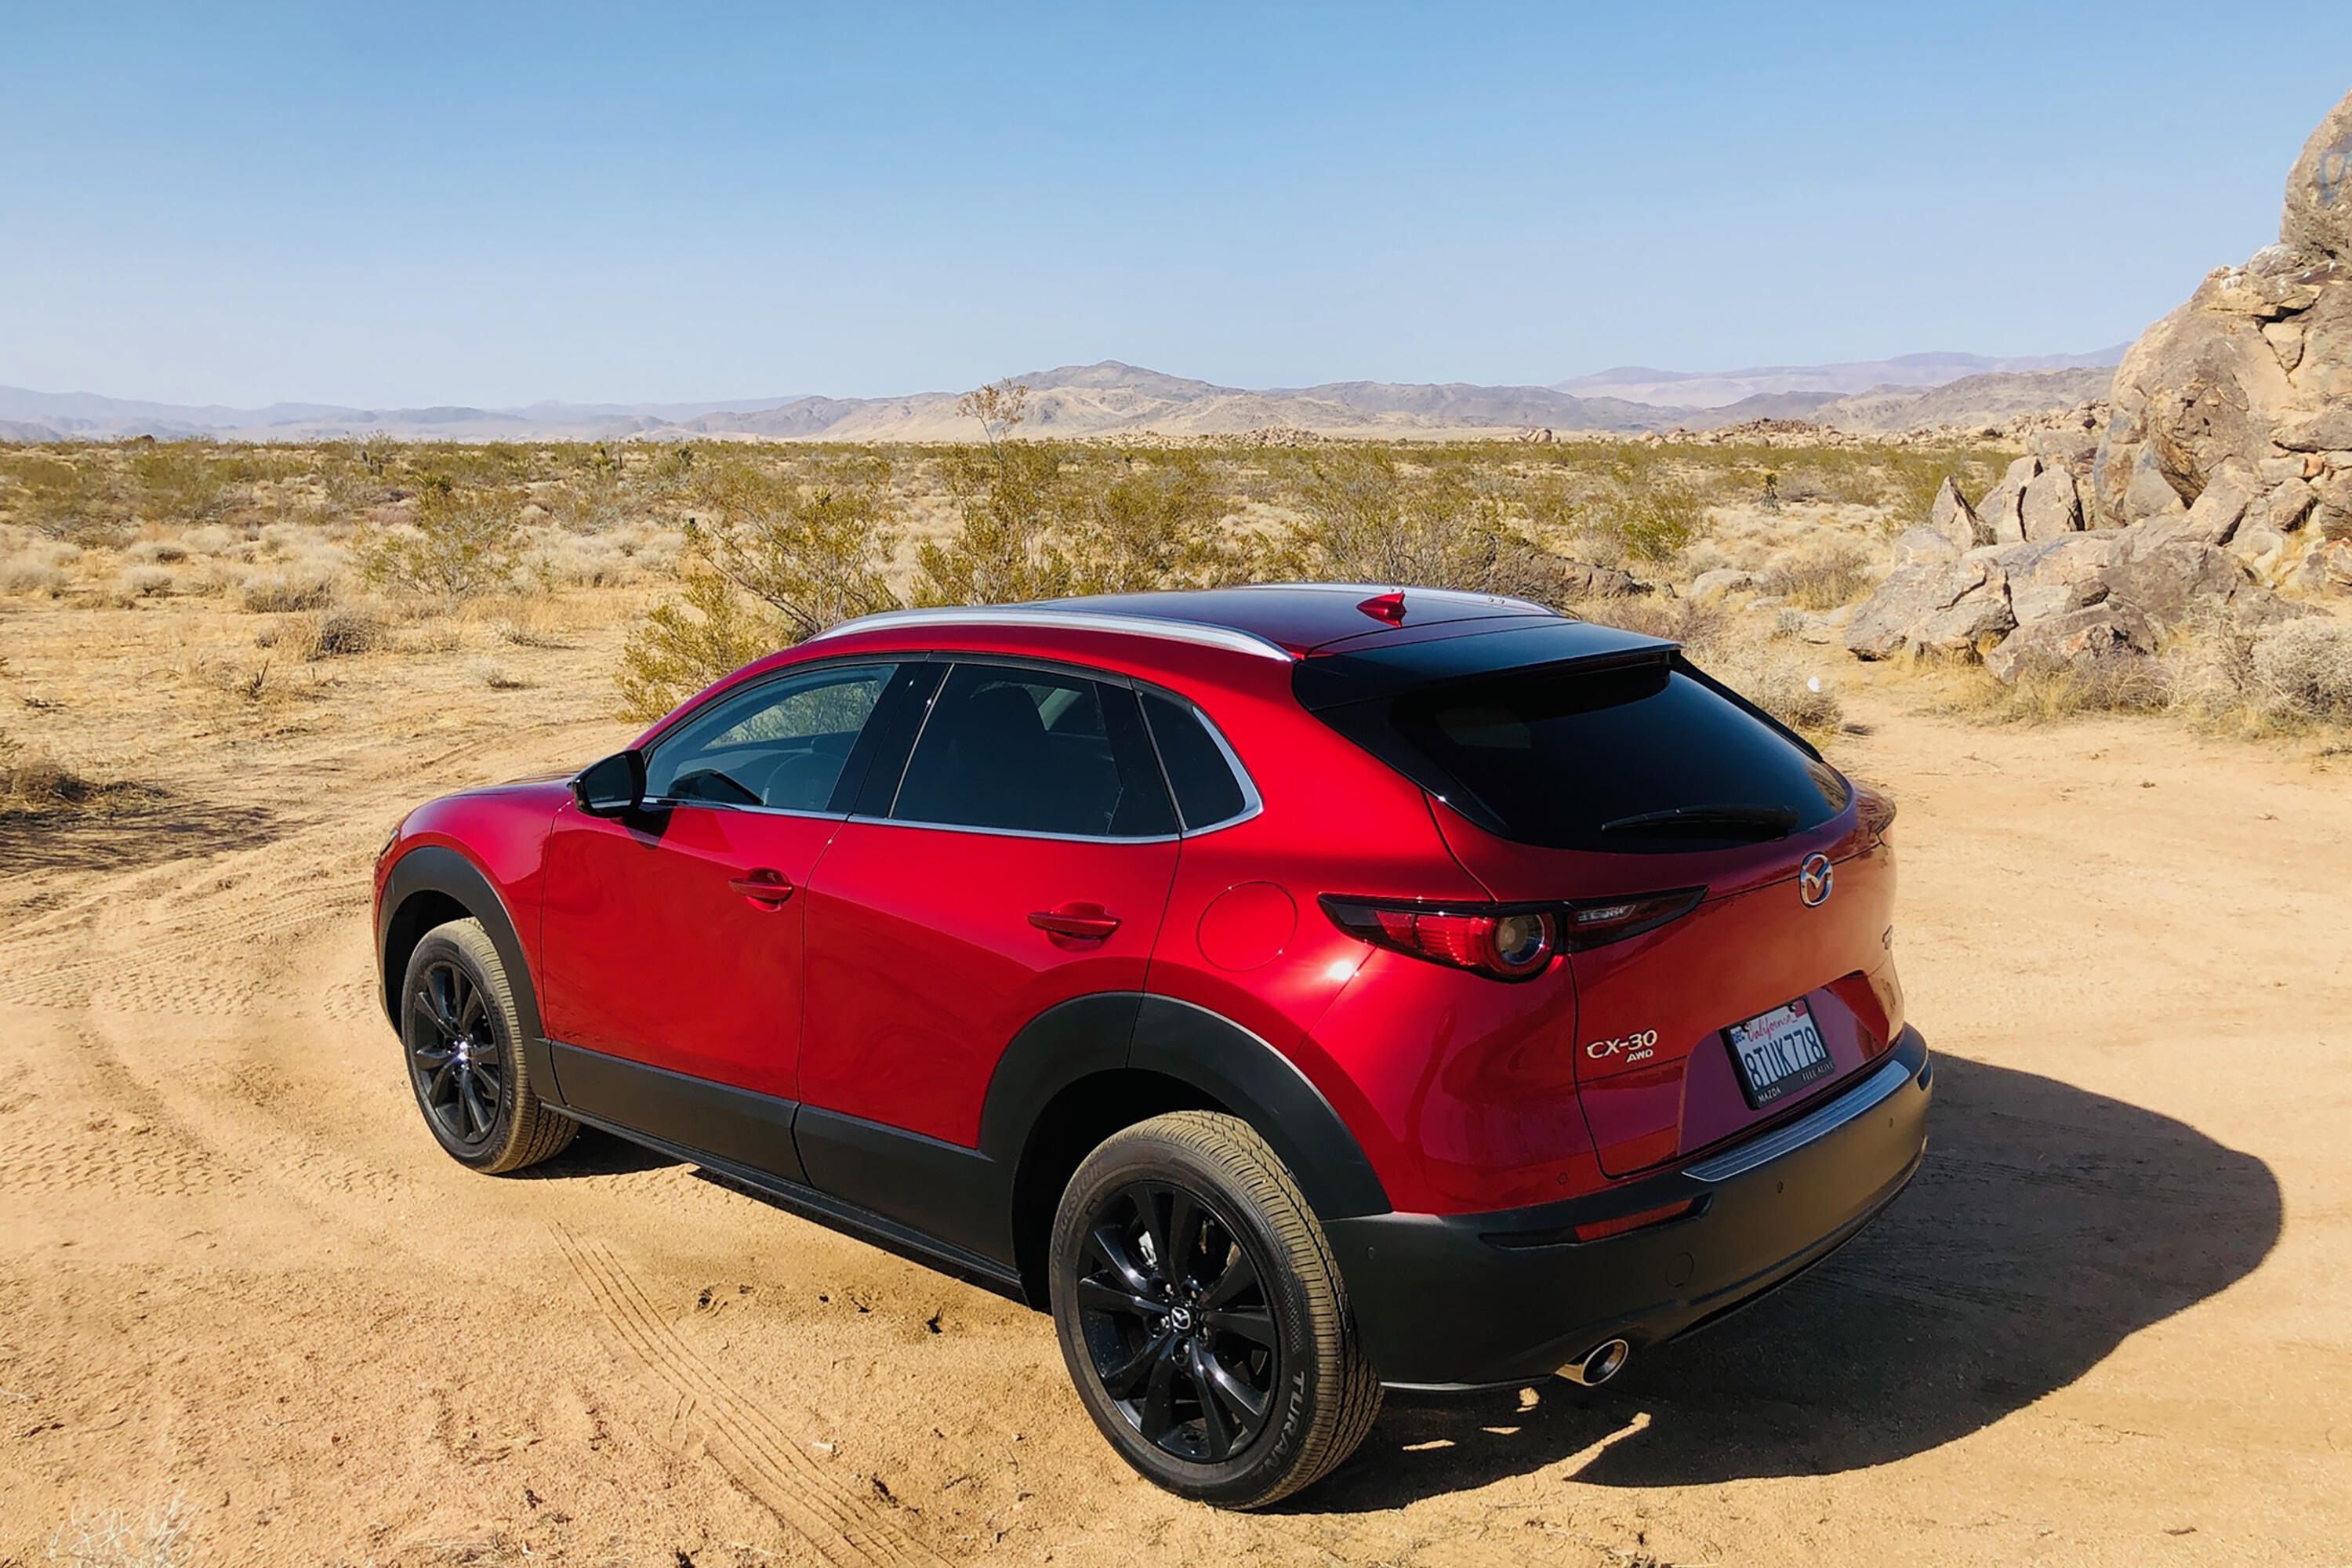 2021 Mazda CX-30 Turbo review: A value-packed performer     - Roadshow